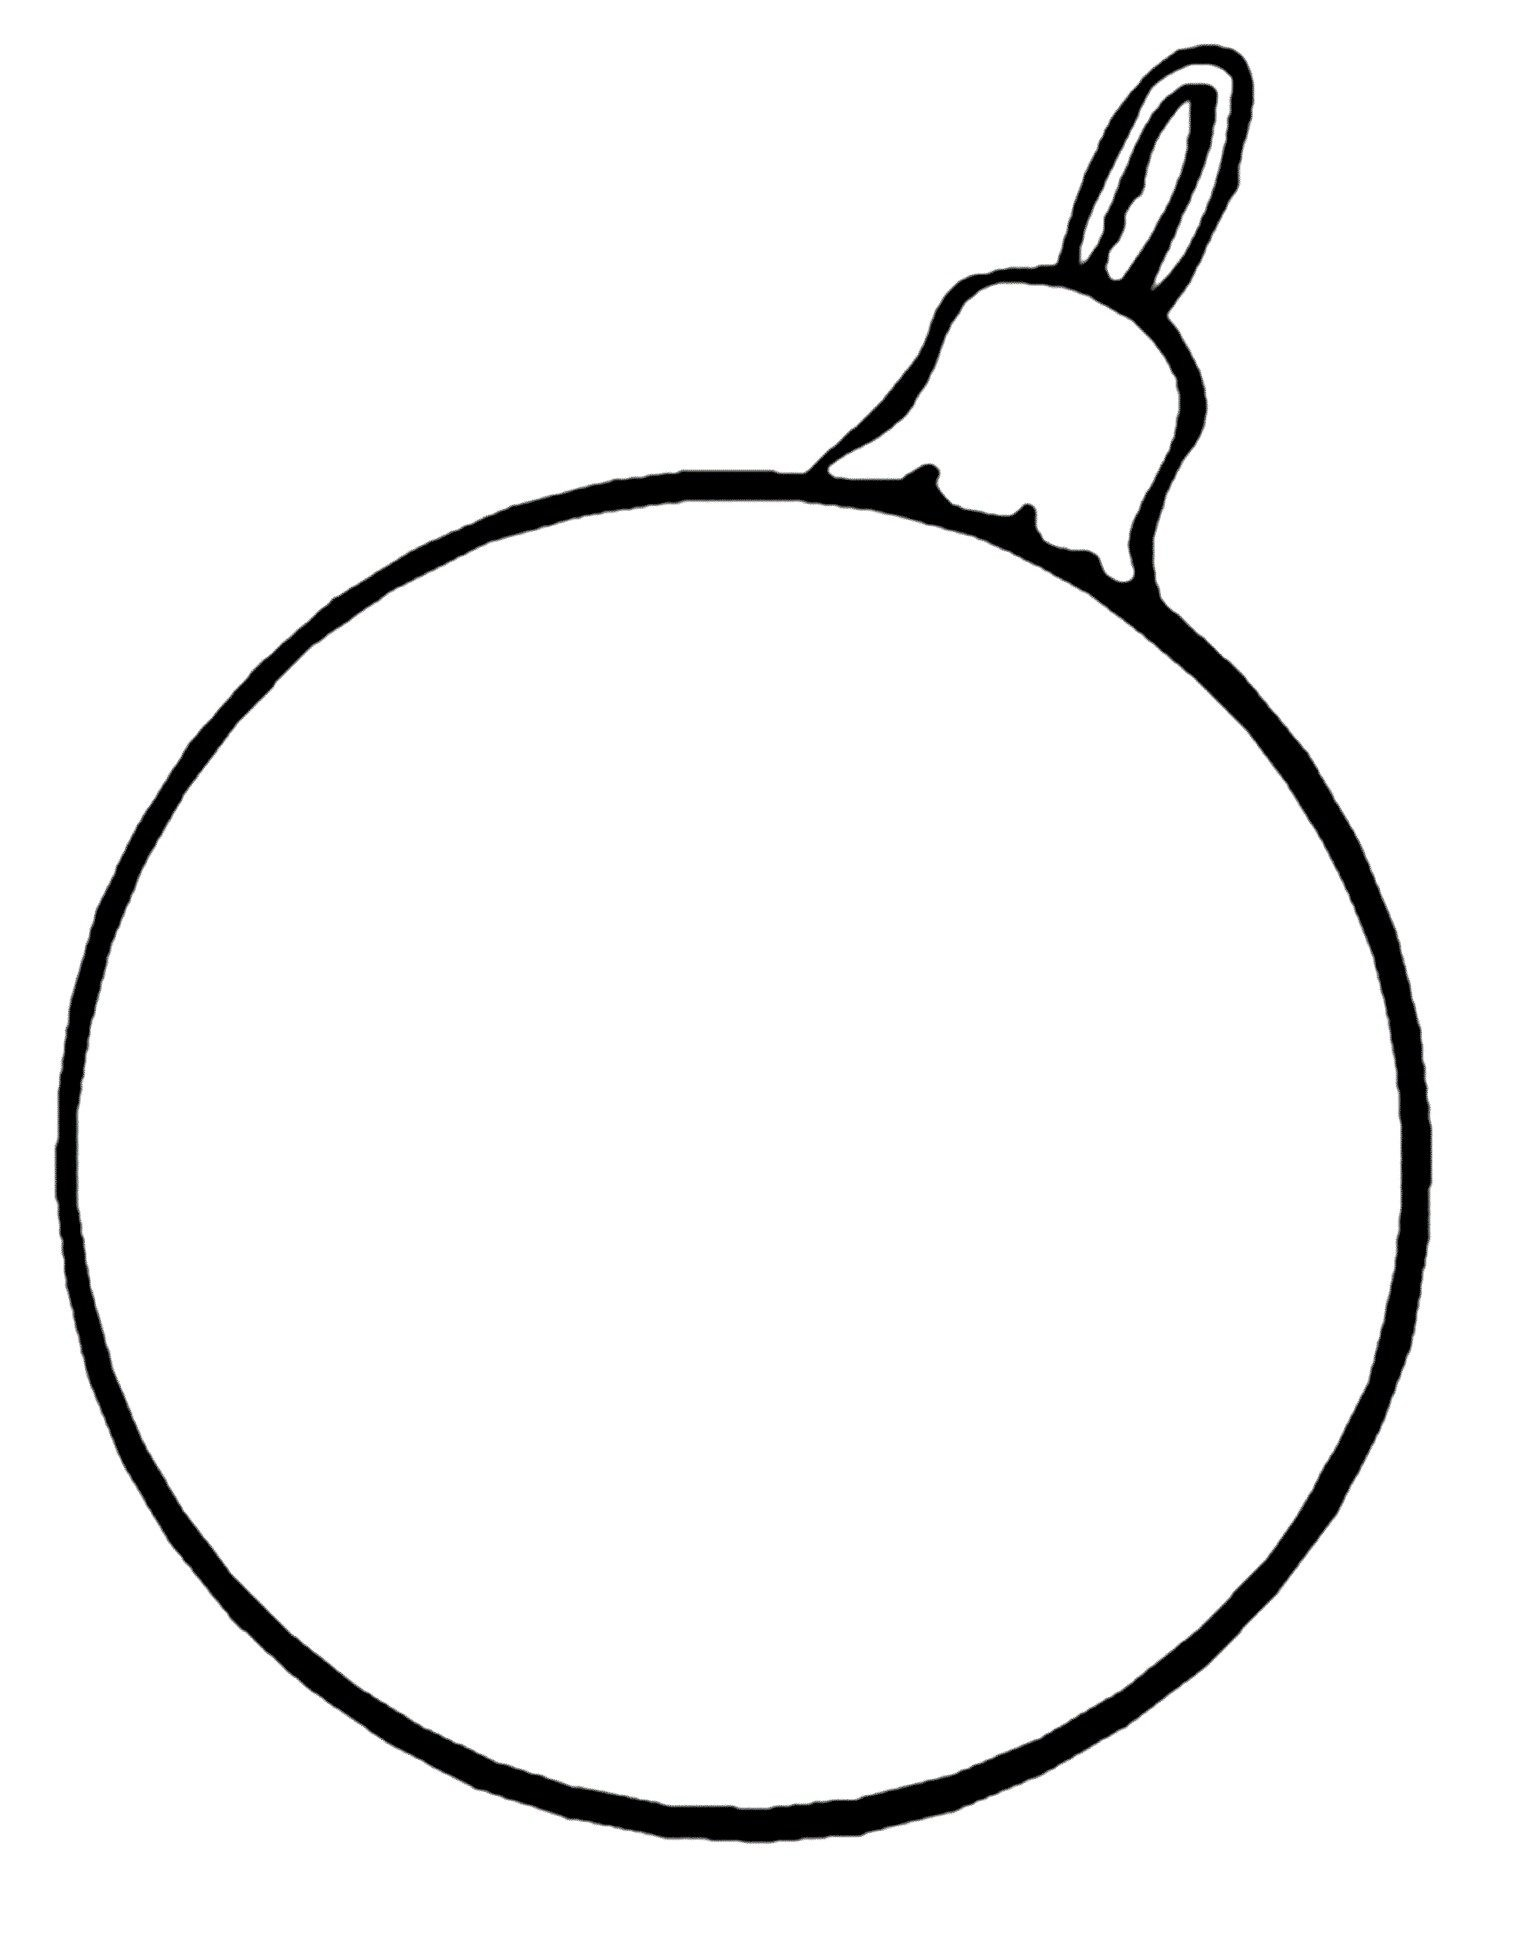 Christmas Ornaments Coloring Pages Printable With Ornament Diagnostic Immobilier Me